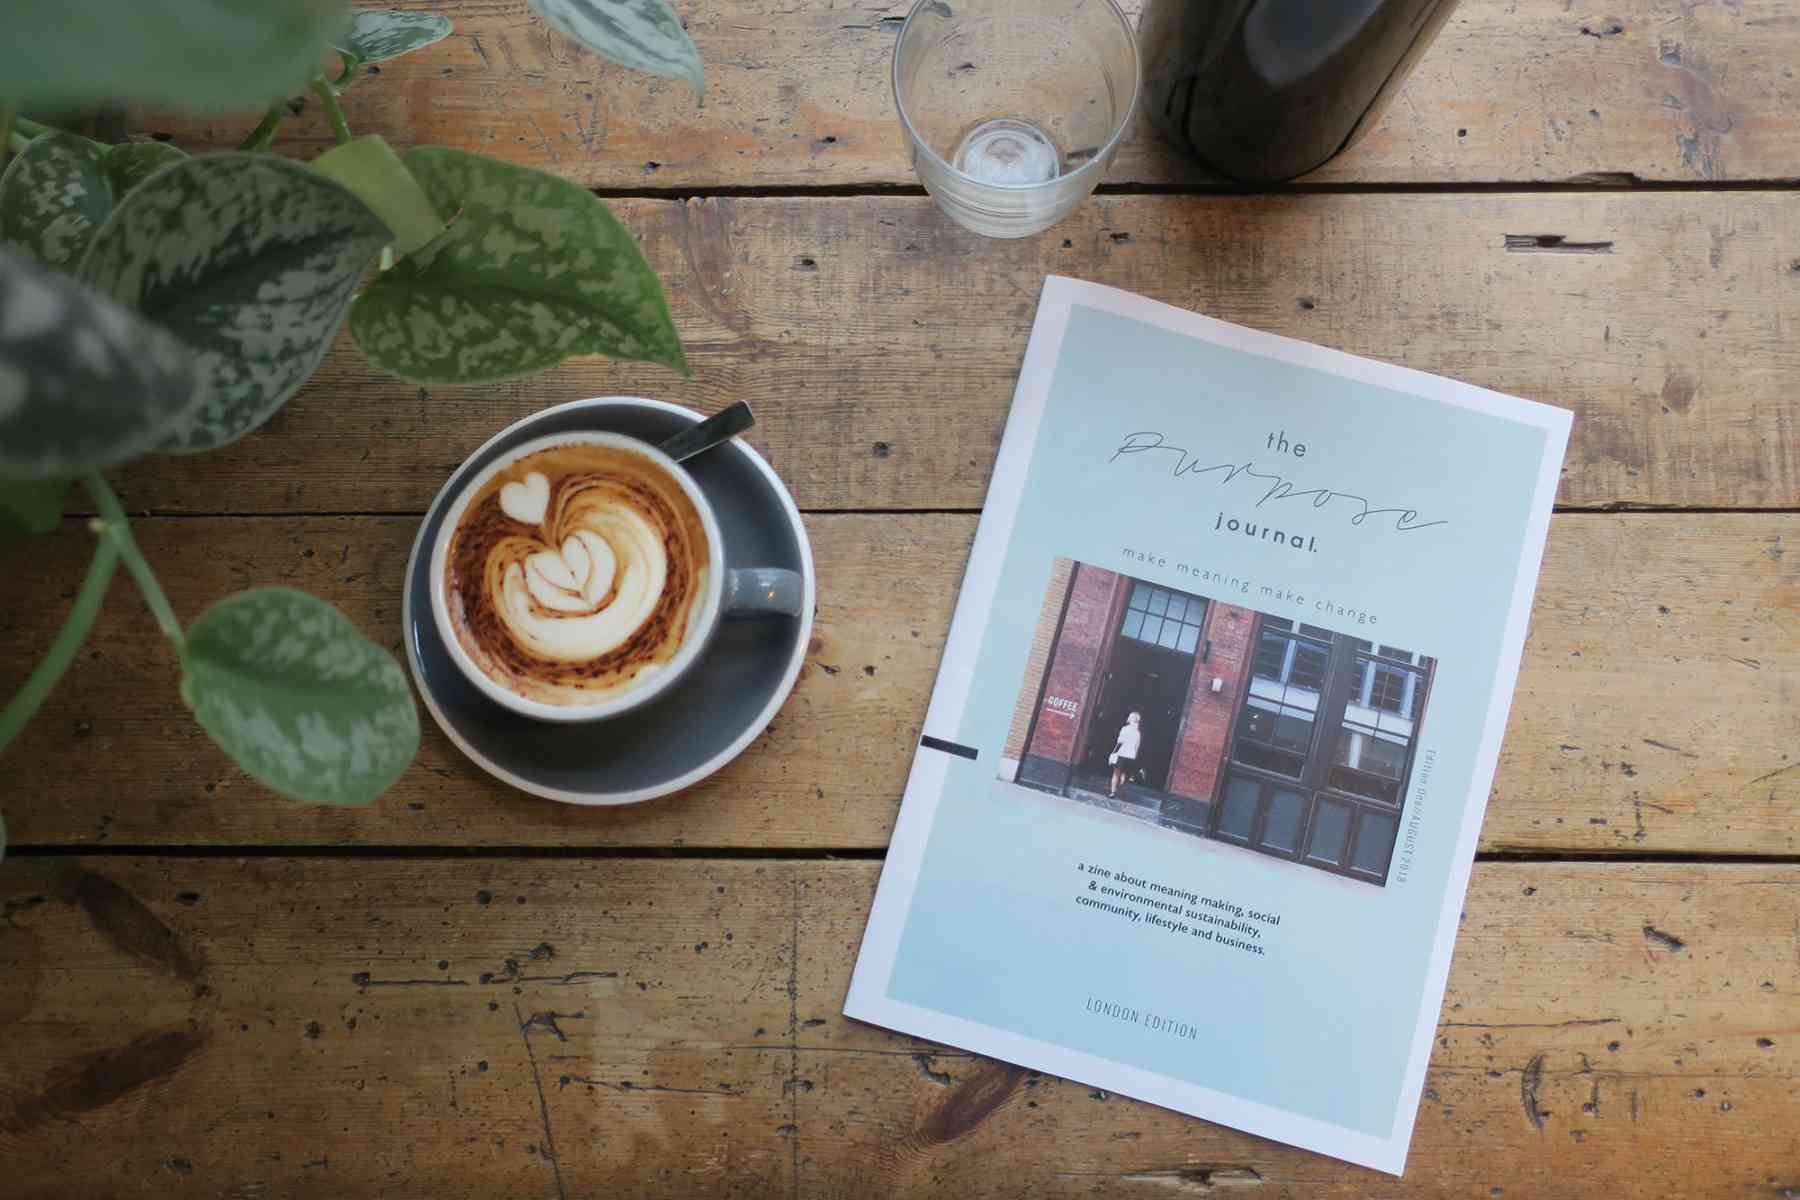 The Purpose Journal - A zine about meaning-making, social and environmental sustainability, community, lifestyle and business, by Katie Sharman